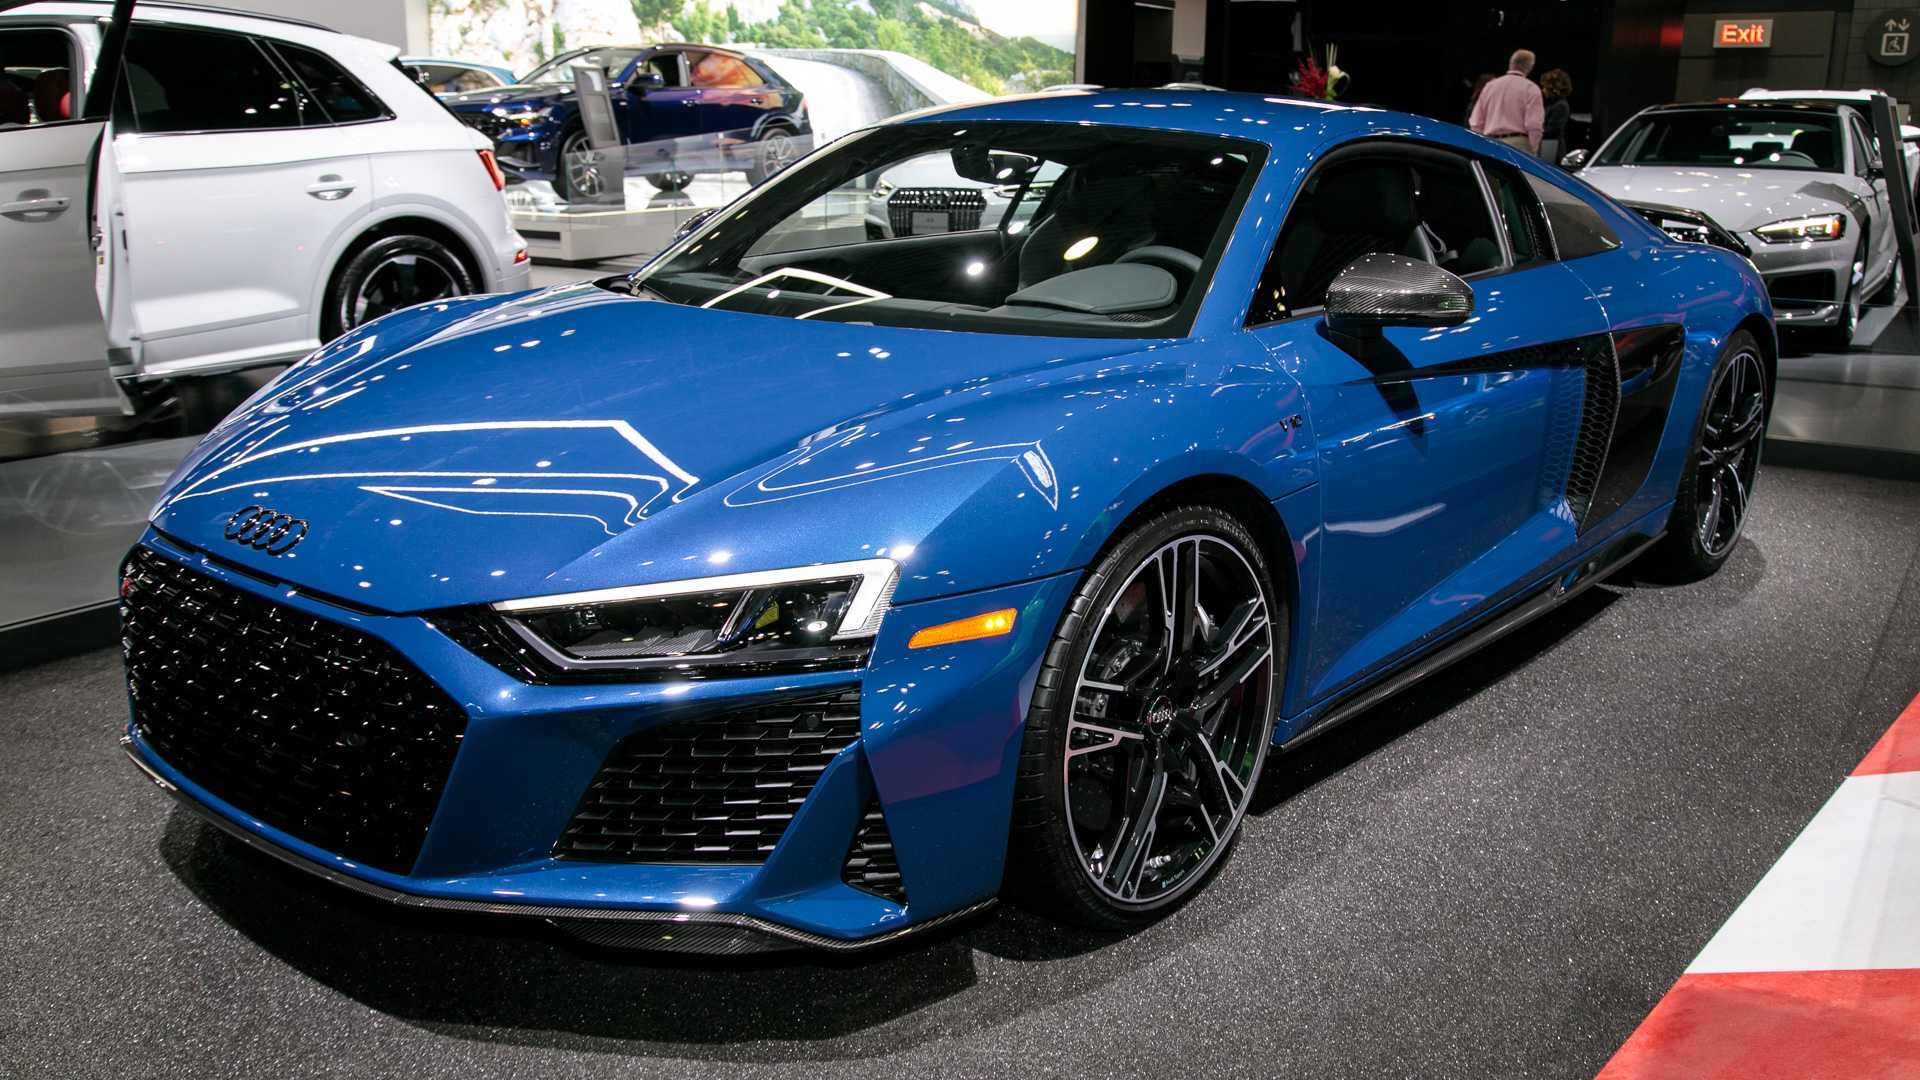 42 New 2020 Audi R8 For Sale Exterior